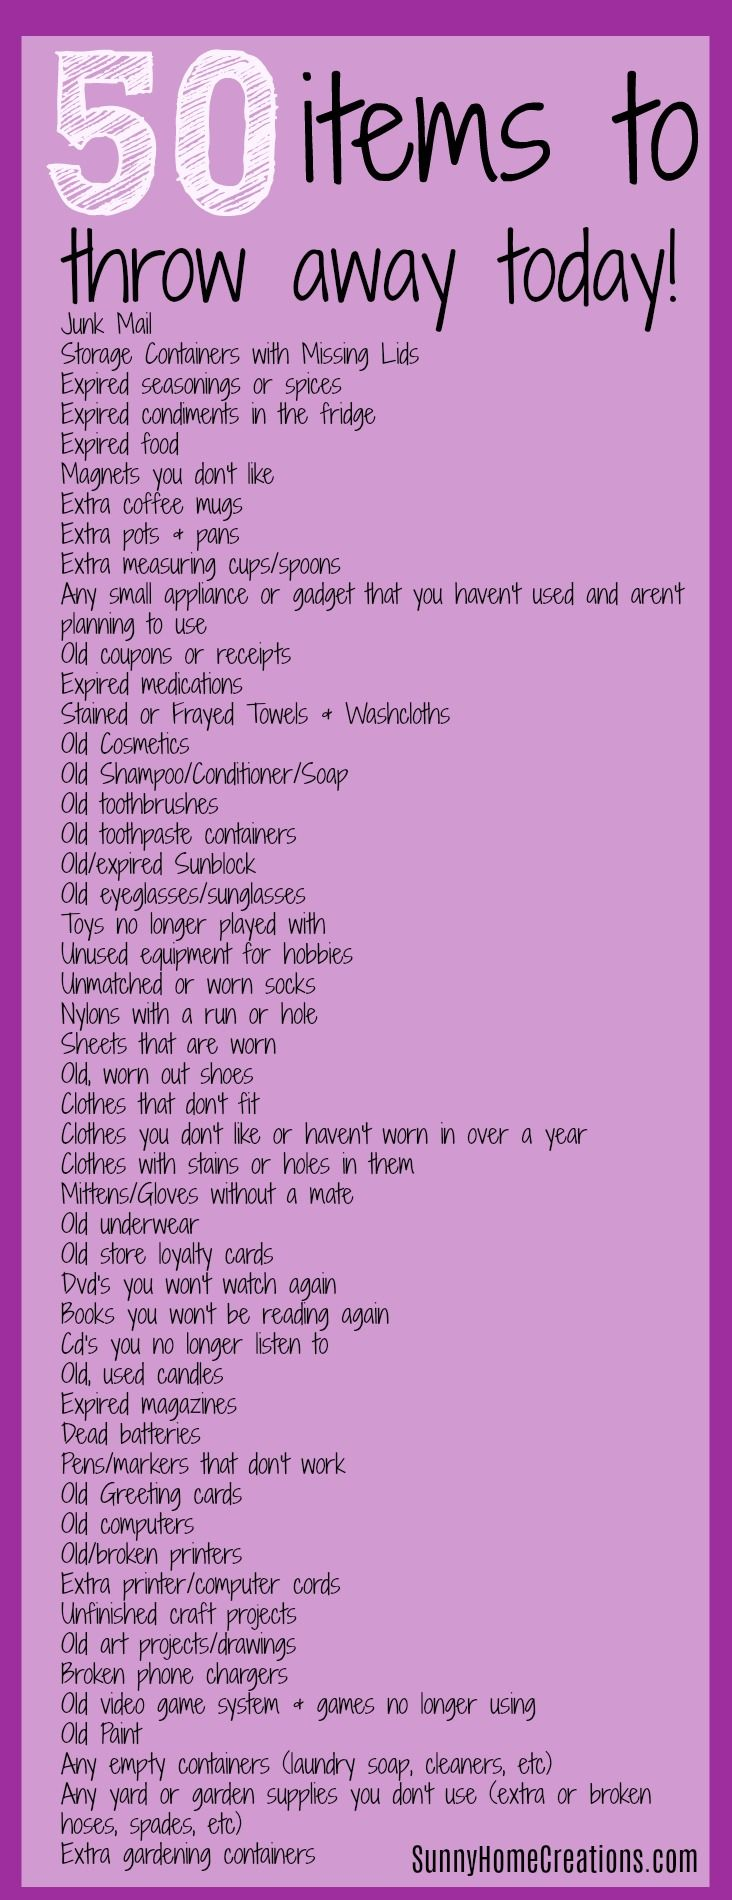 50 items to throw away today!   Are you wondering